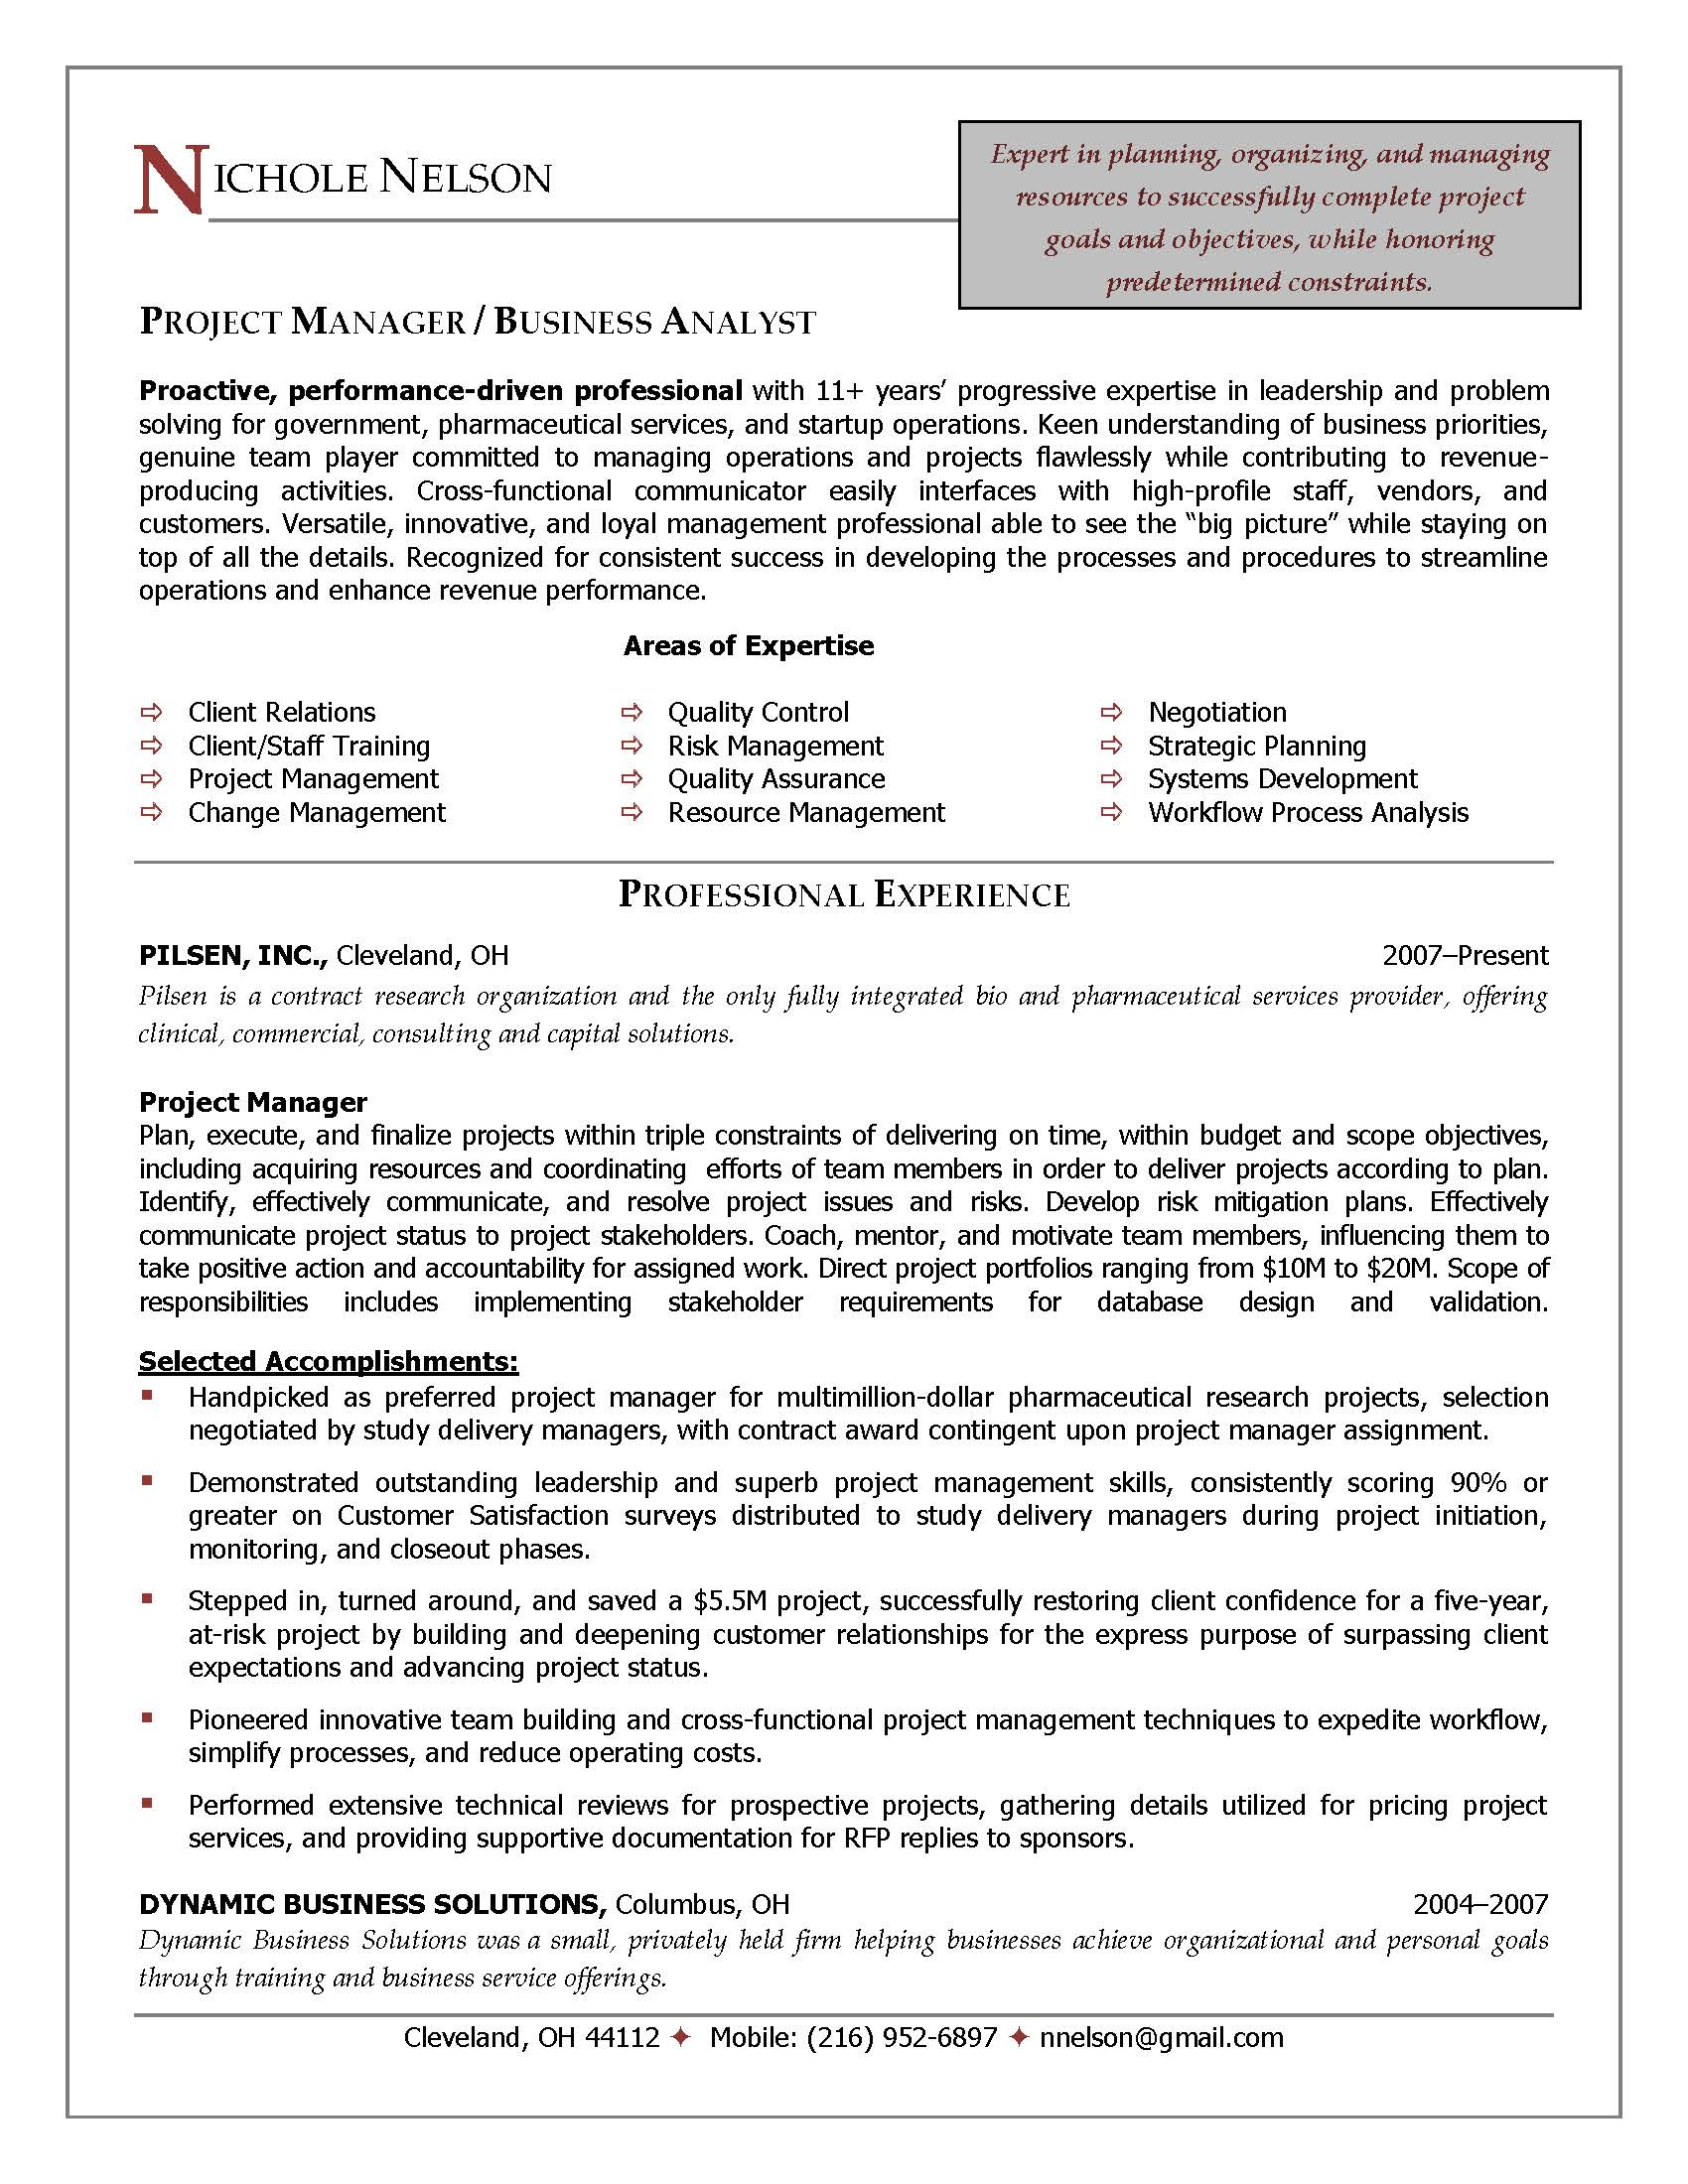 construction manager cv template building industry references pinterest co founder general manager automotive div resume samples - Resume Of Project Manager Pdf